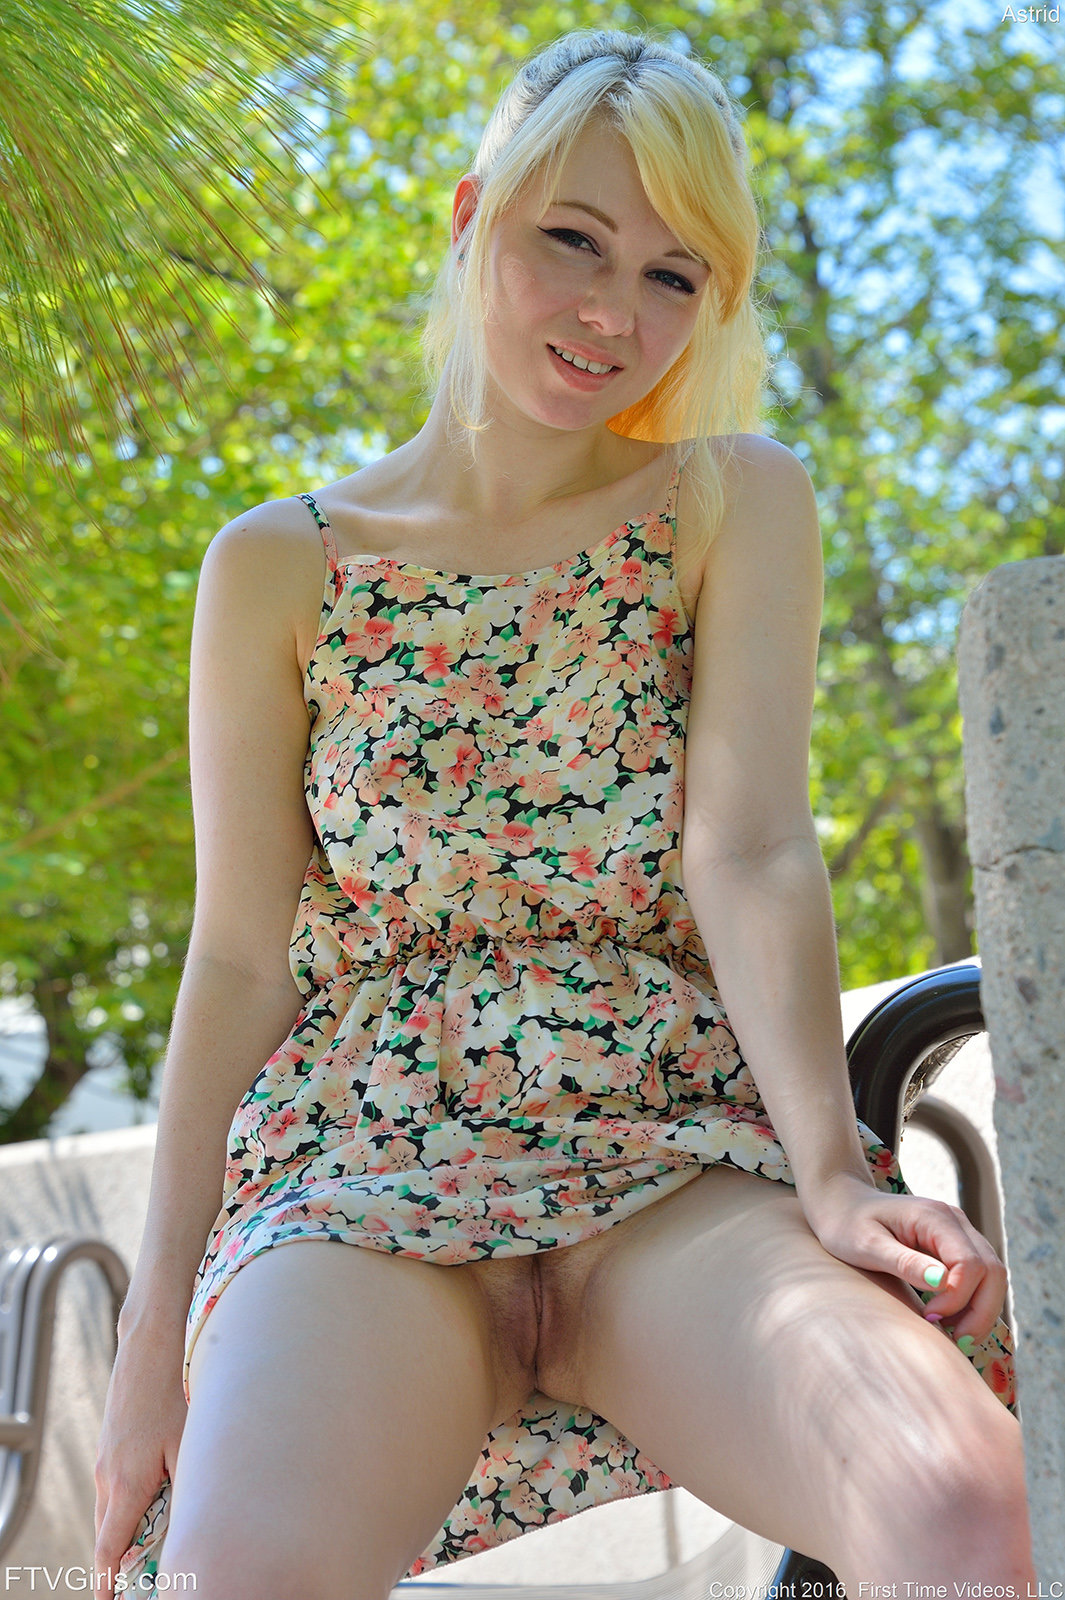 Astrid In A Very Natural Beauty By Ftv Girls 16 Photos -9777